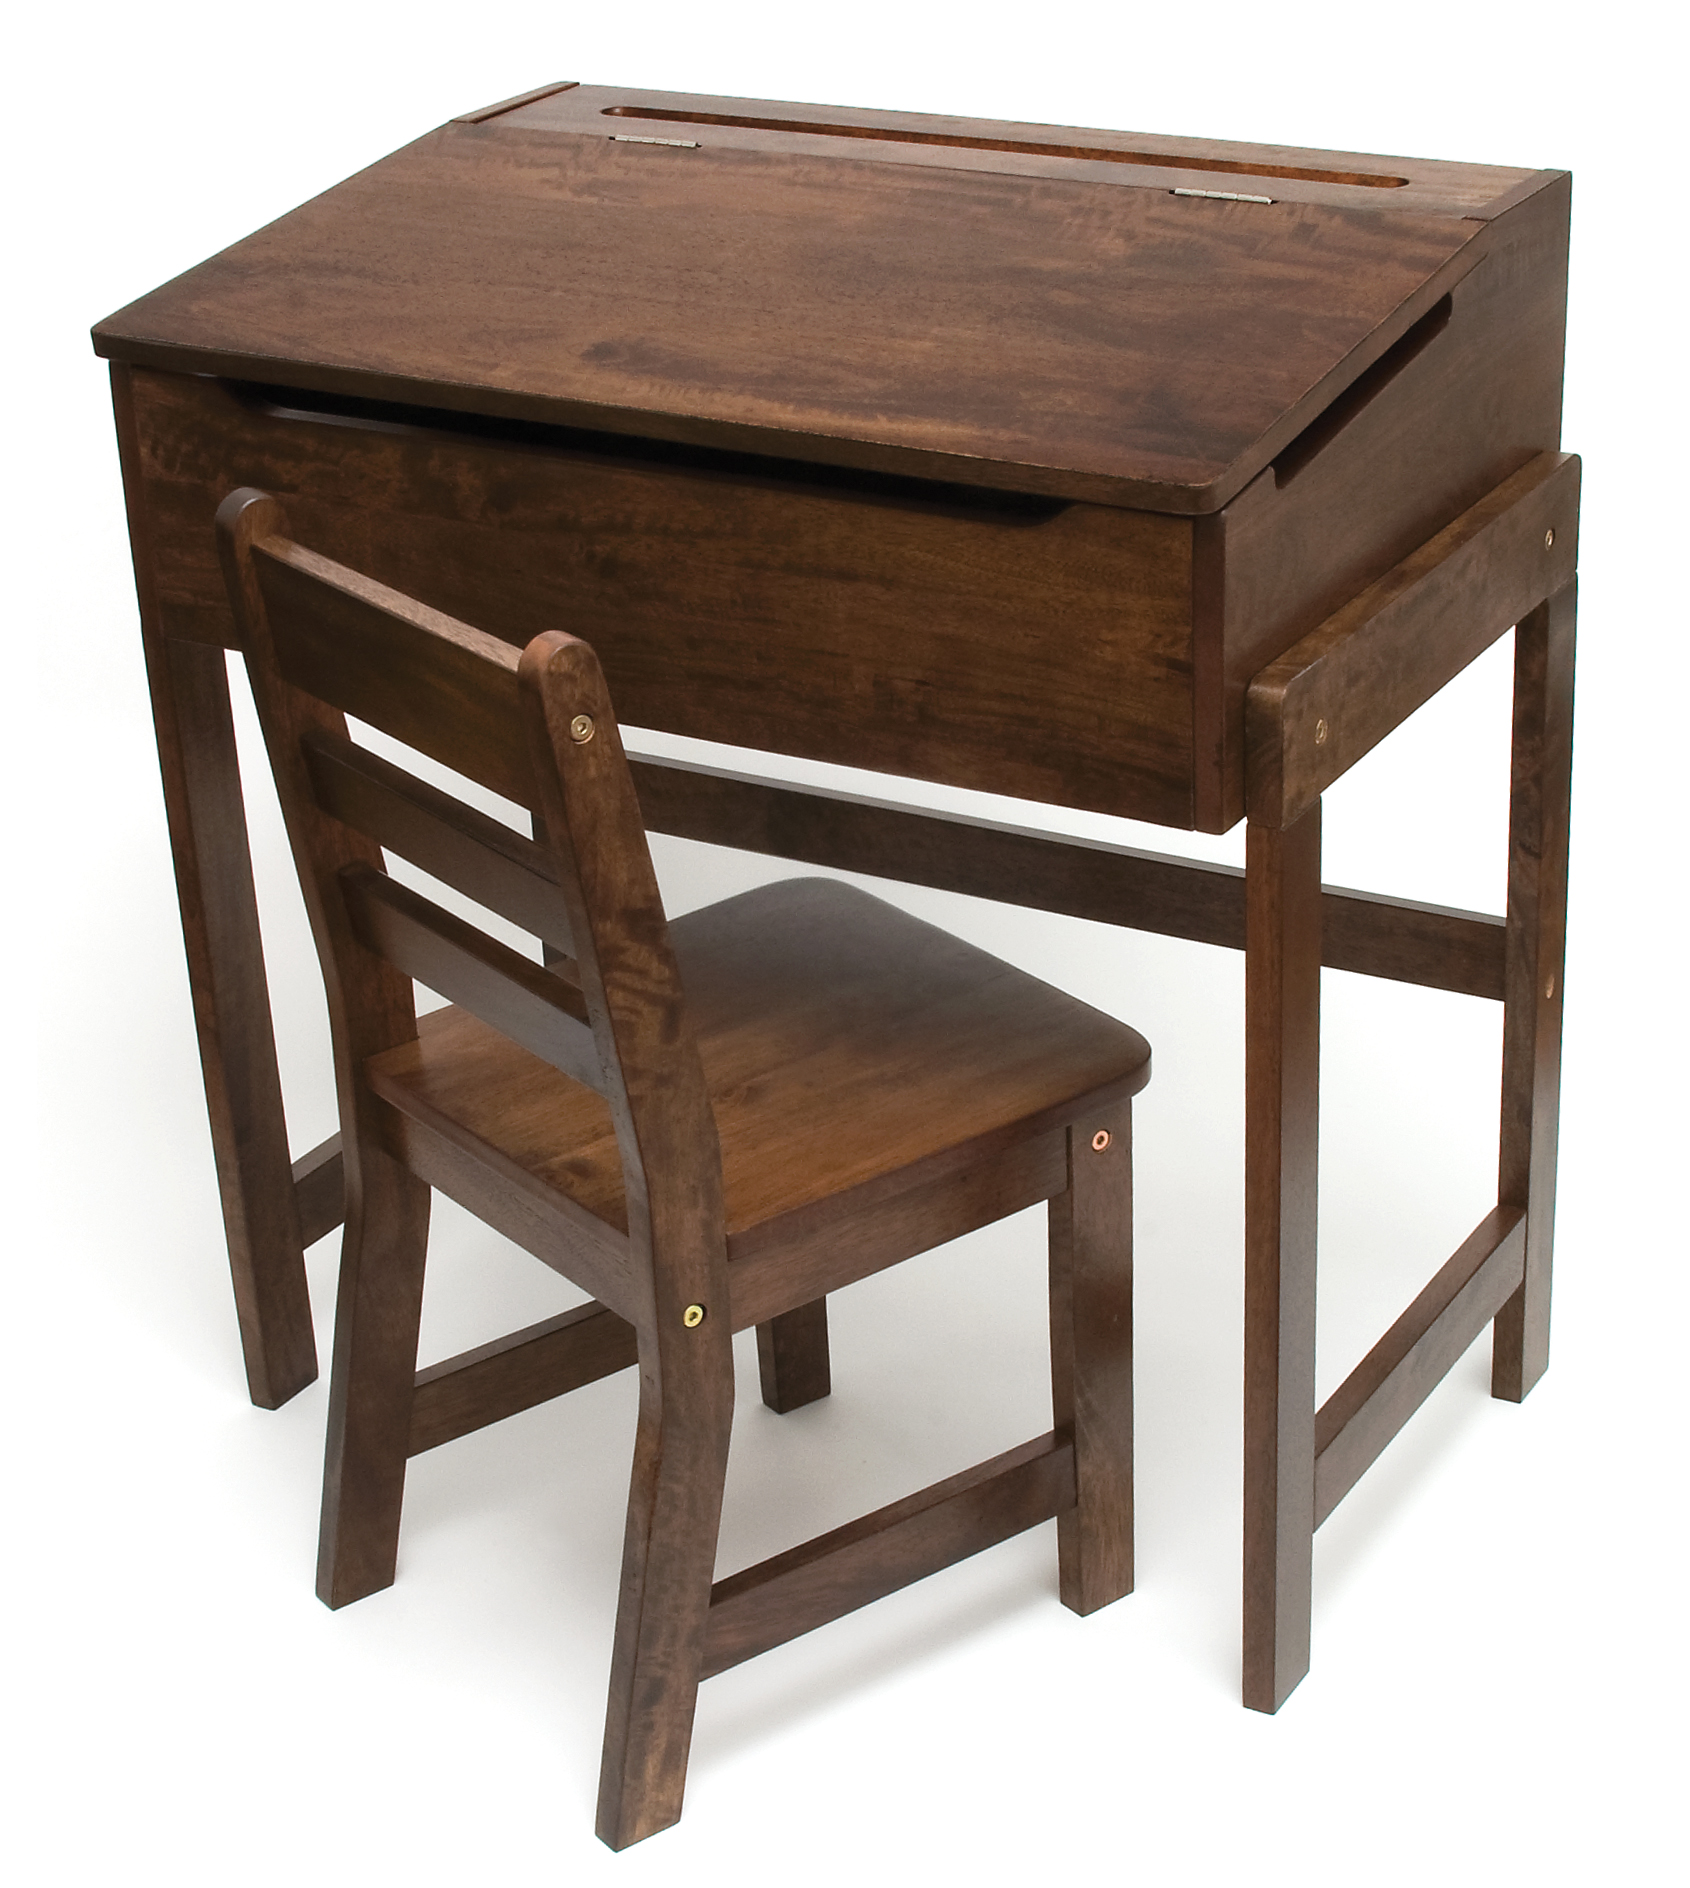 Low Cost Child S Slanted Top Desk Chair Walnut